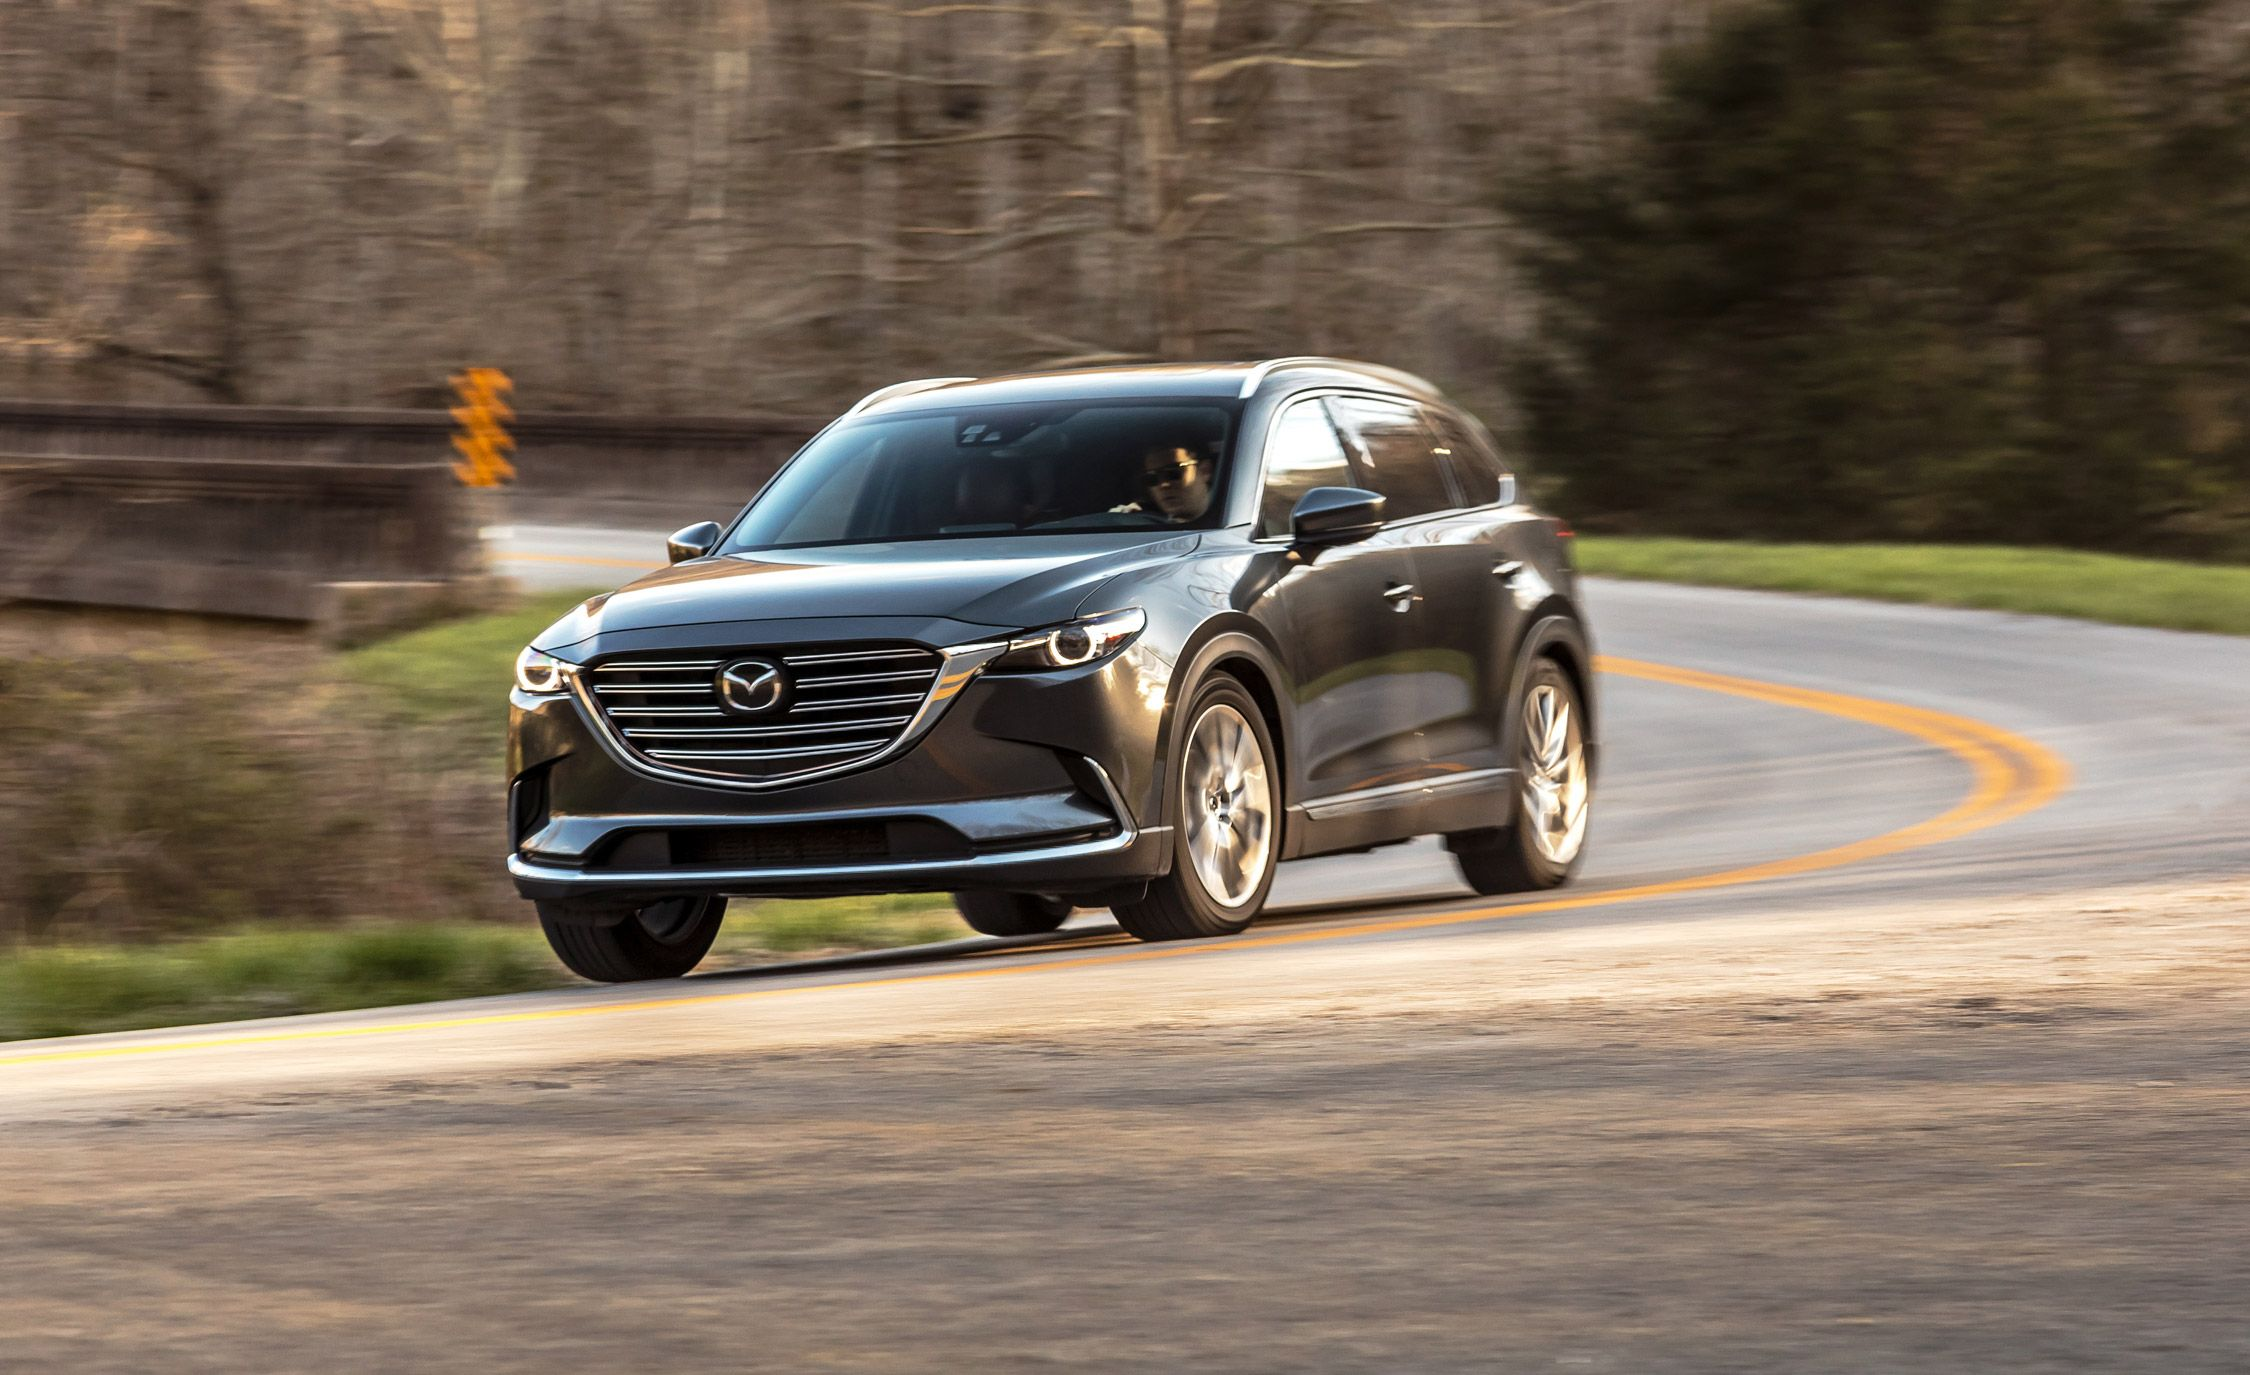 hight resolution of 2016 mazda cx 9 long term test wrap up review car and driverimage st car and driver fuel filter replacement